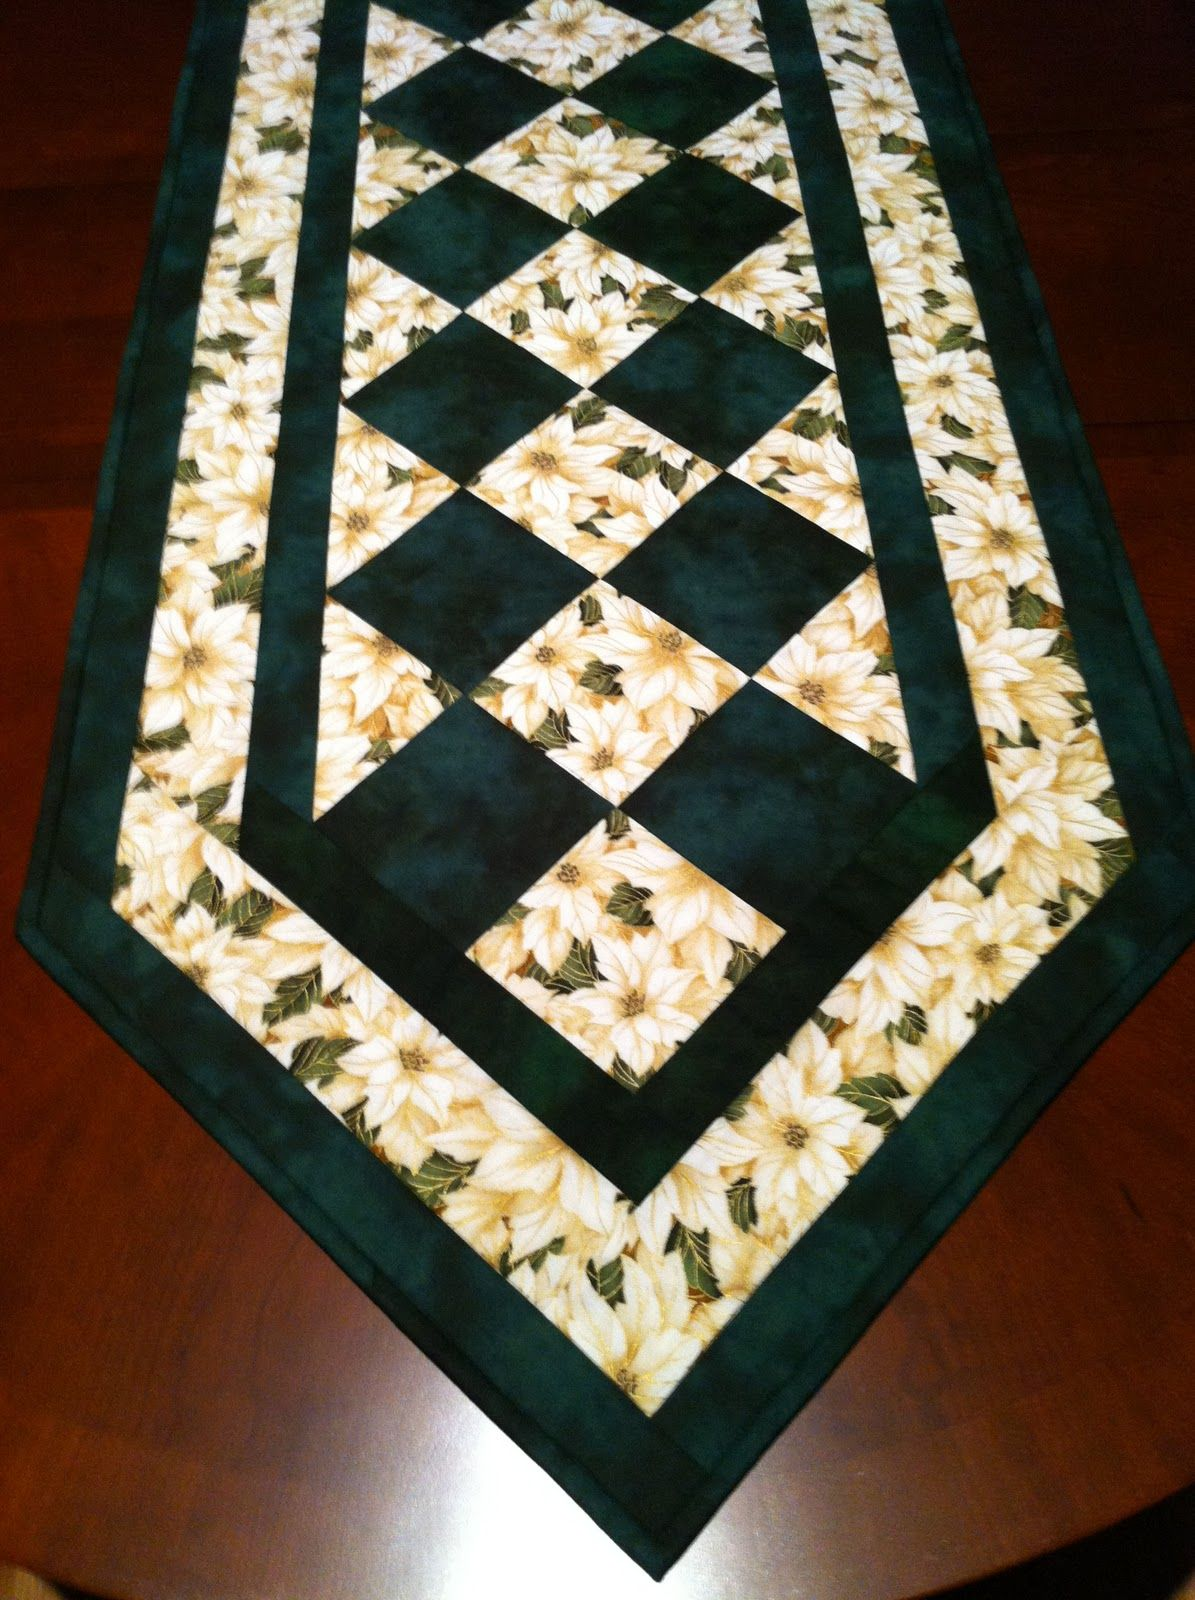 Easy Table Runner Patterns | one for myself. You can never have ... : easy quilted placemat patterns - Adamdwight.com